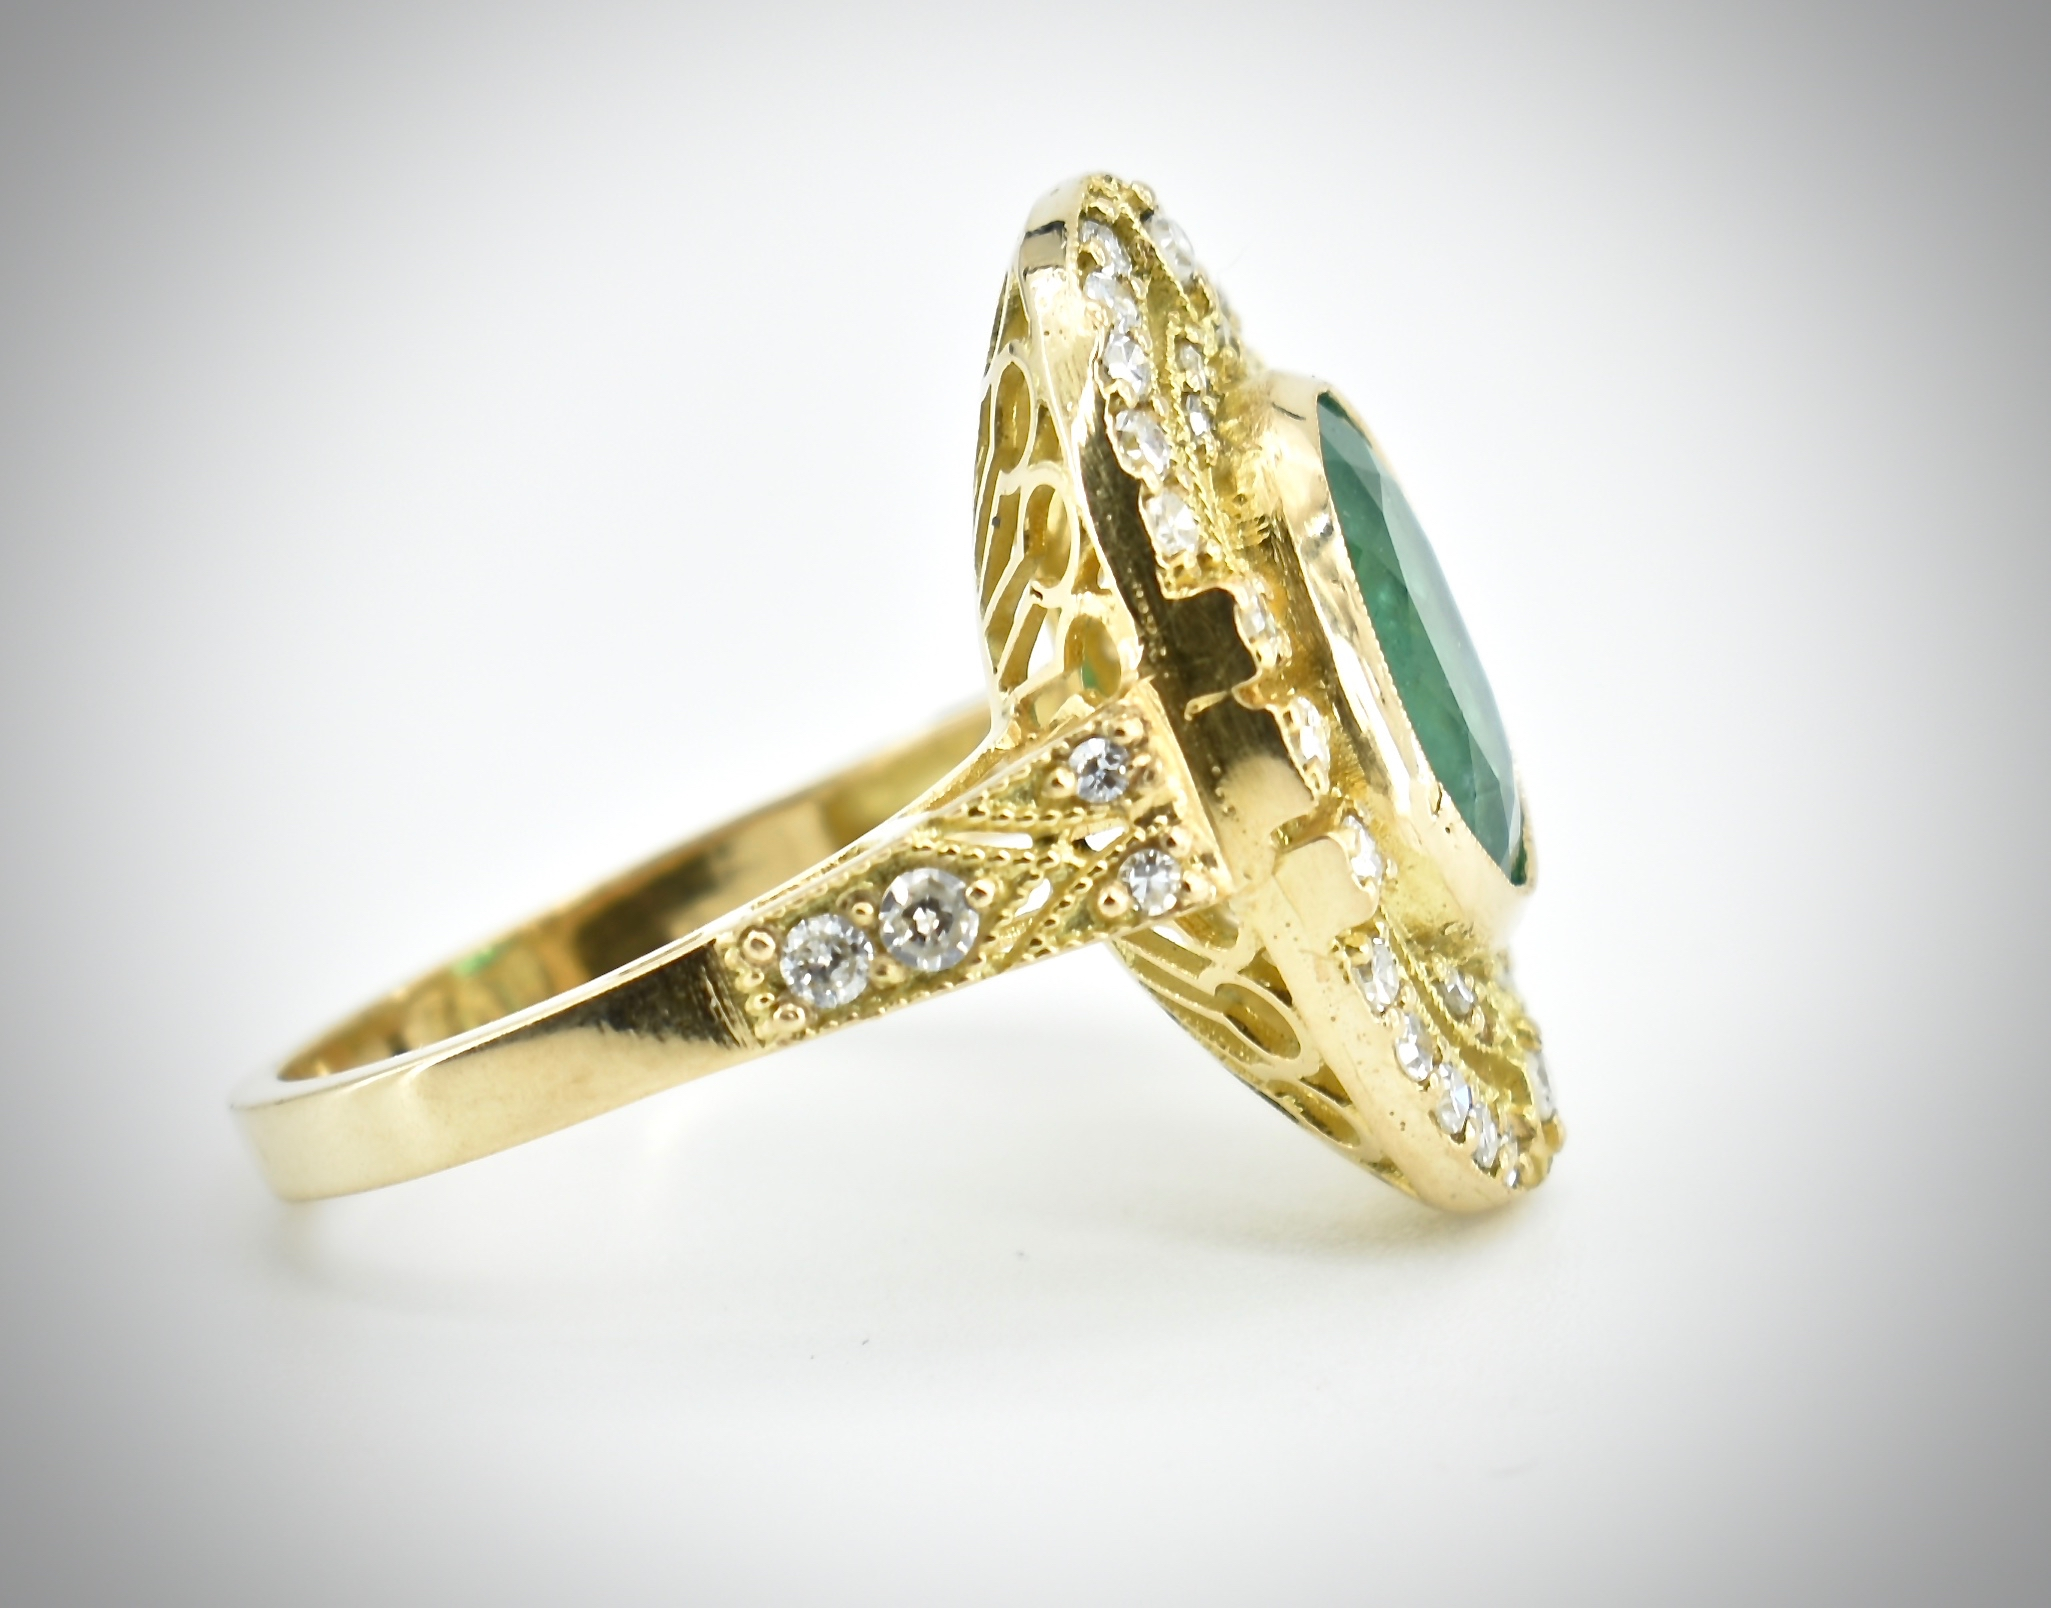 AN 18CT GOLD EMERALD & DIAMOND RING - Image 4 of 5